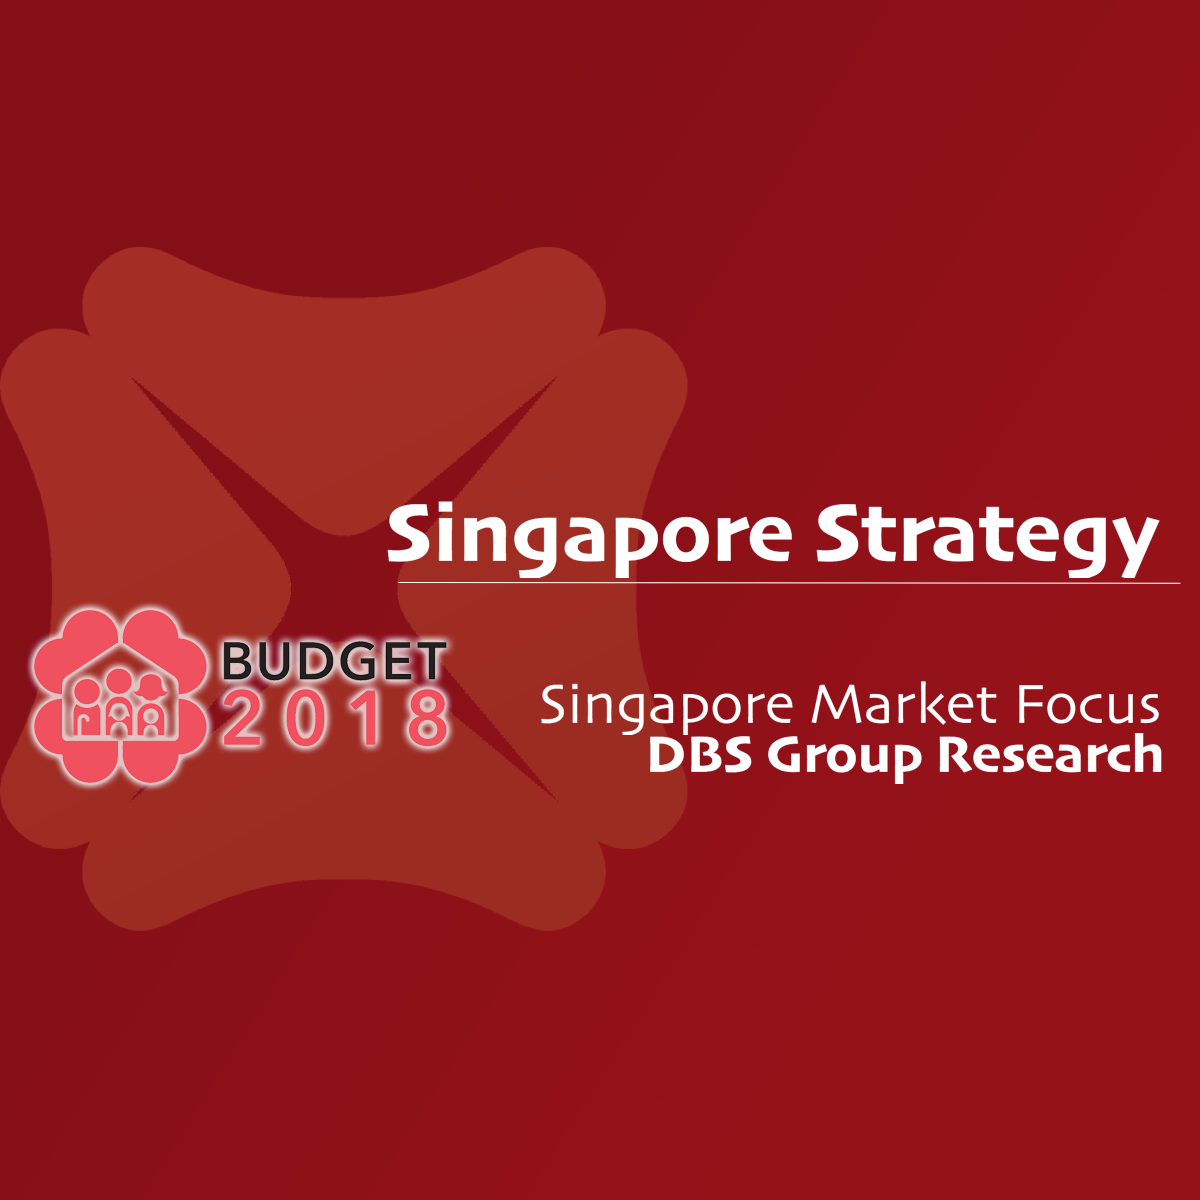 Singapore Market Focus - DBS Vickers 2018-02-19: SG Bonus From Bumper Surplus